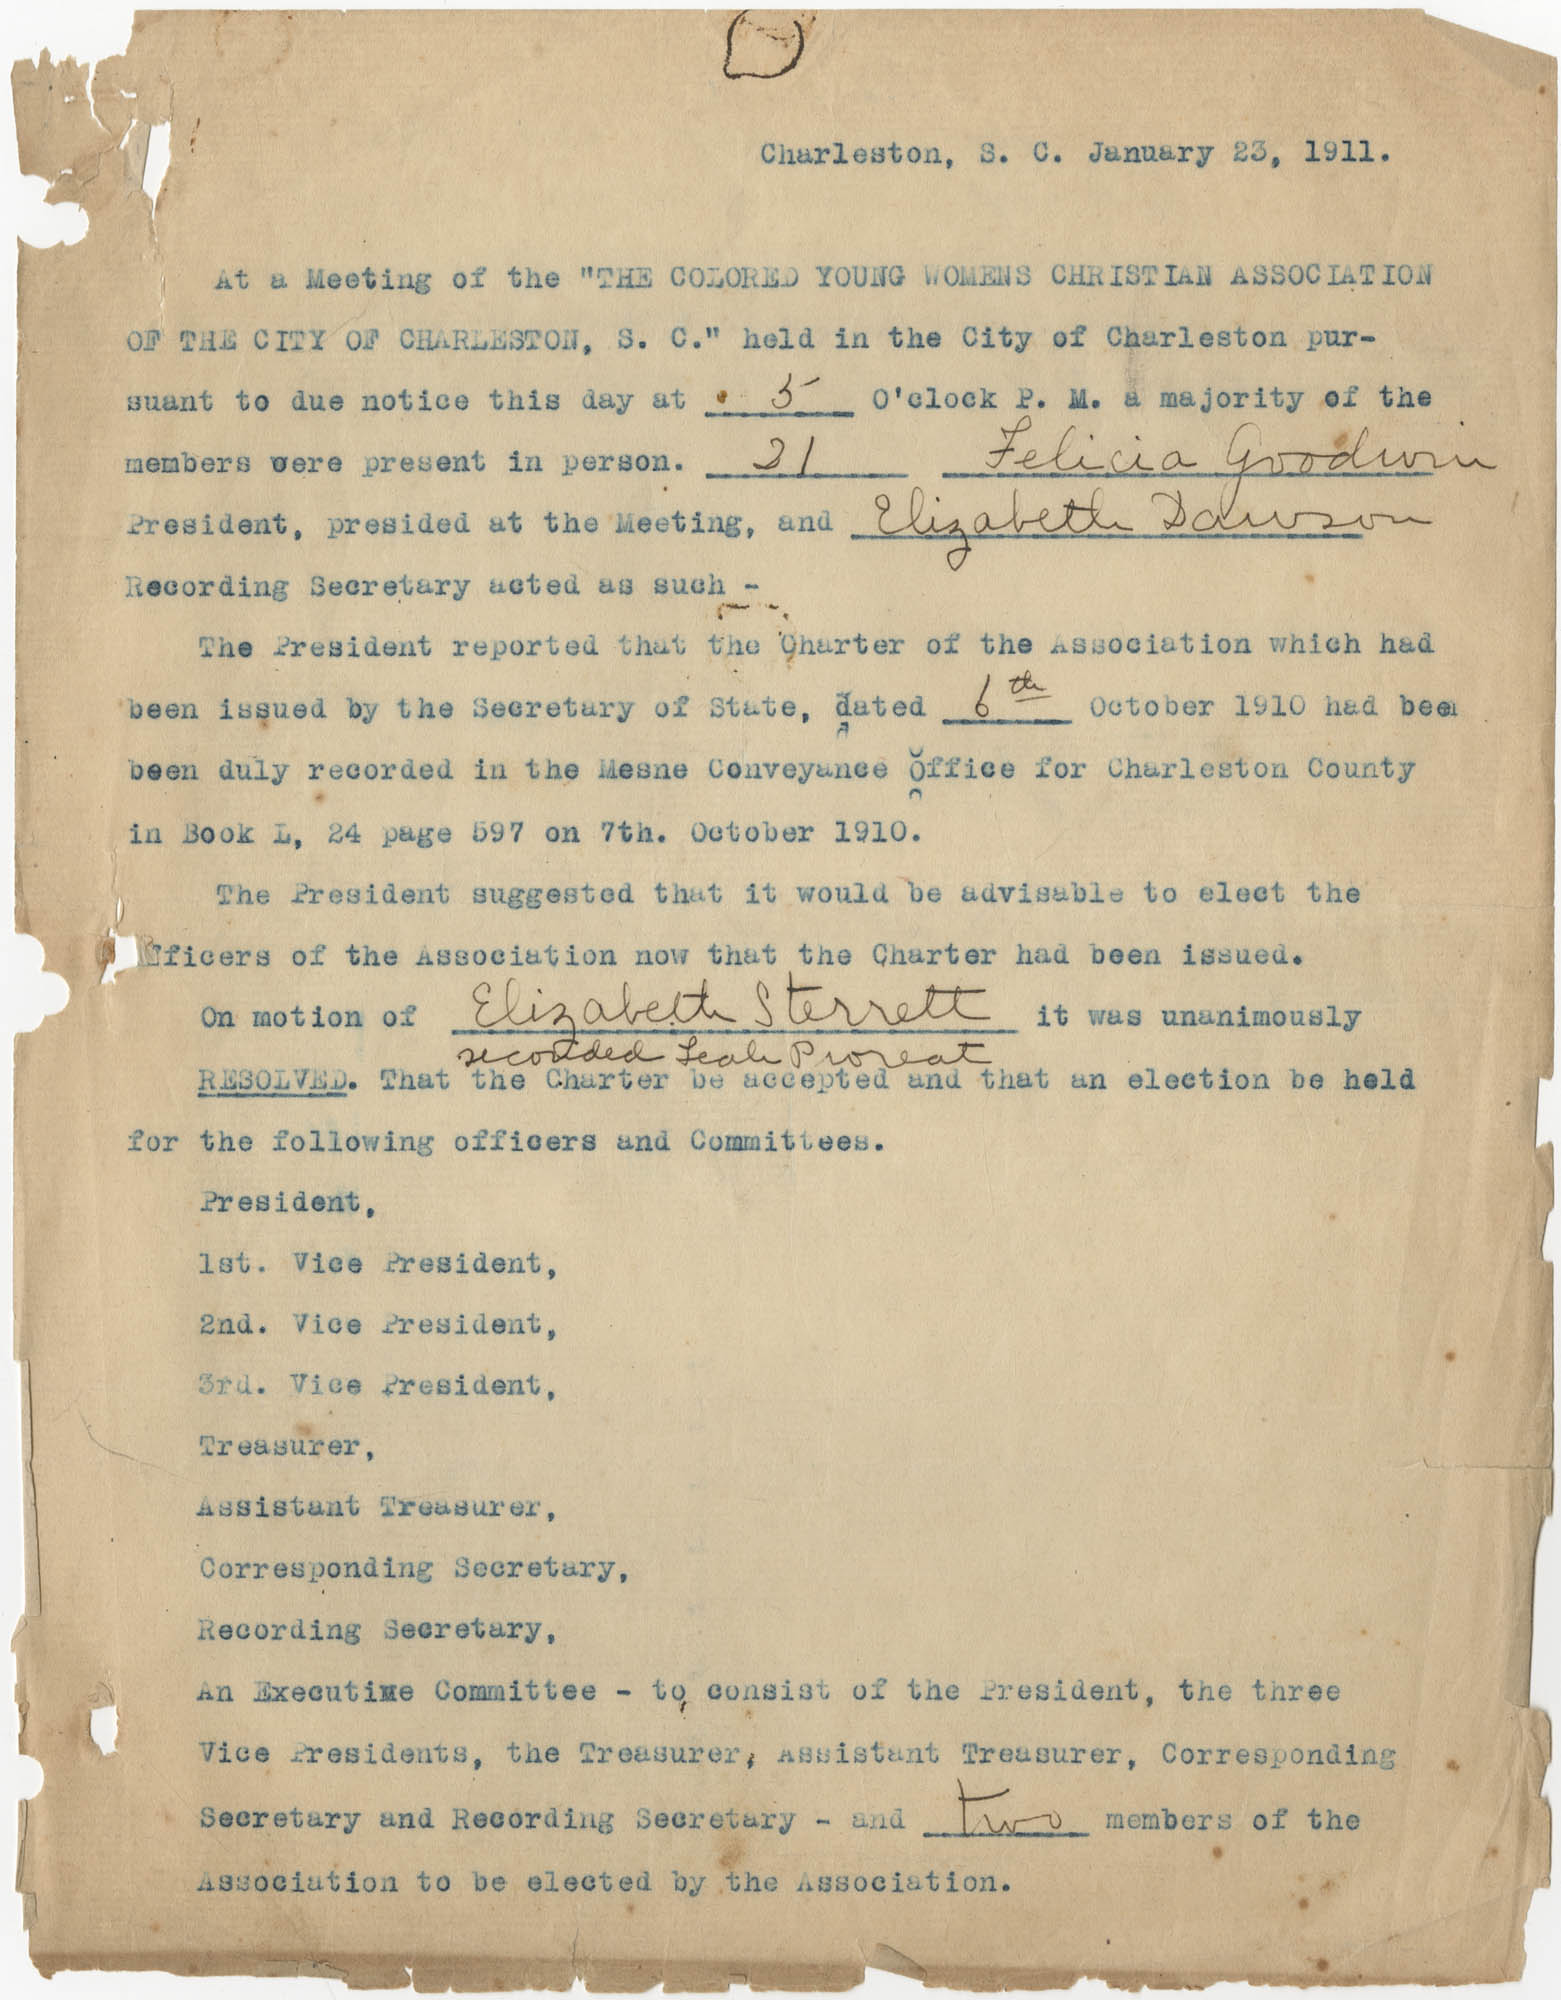 Minutes to the Coming Street Y.W.C.A. Meeting, January 23, 1911